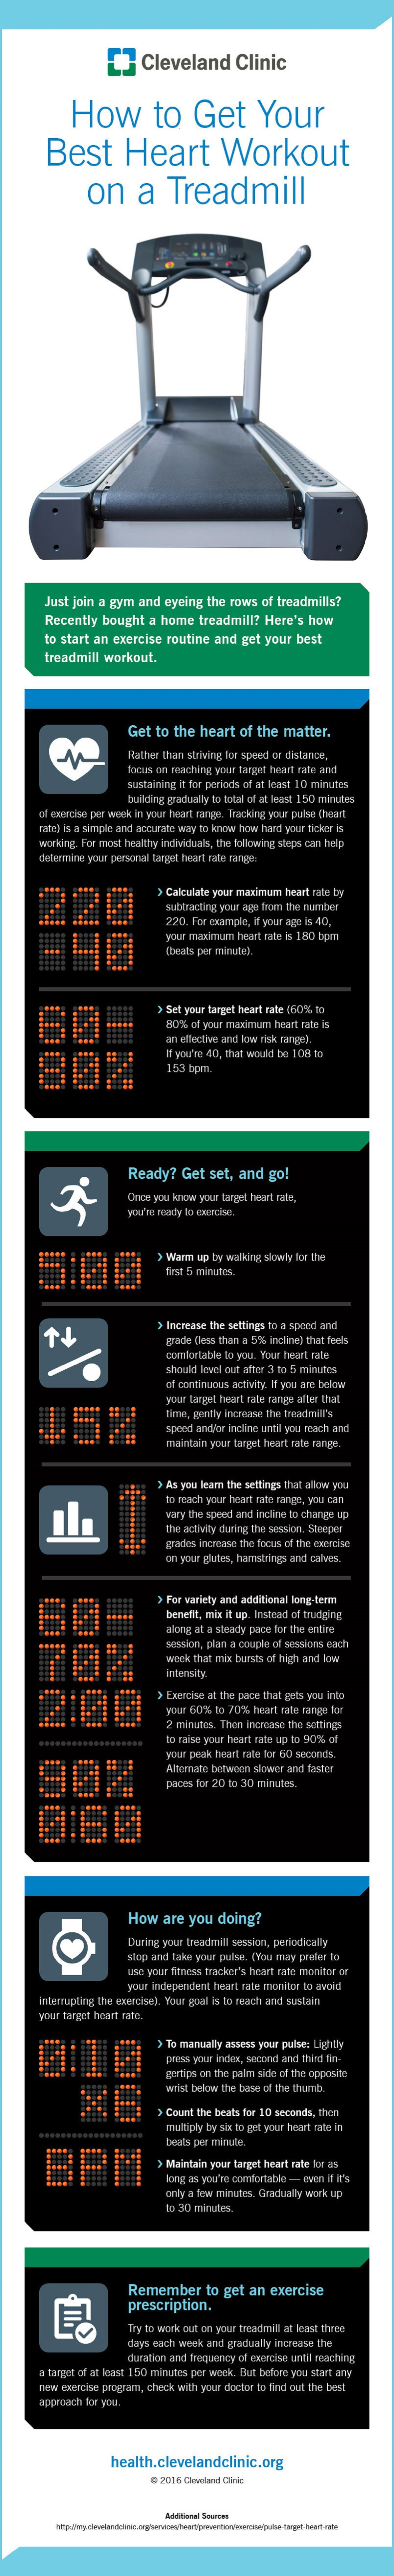 how-to-get-your-best-heart-workout-on-a-treadmill-infographic